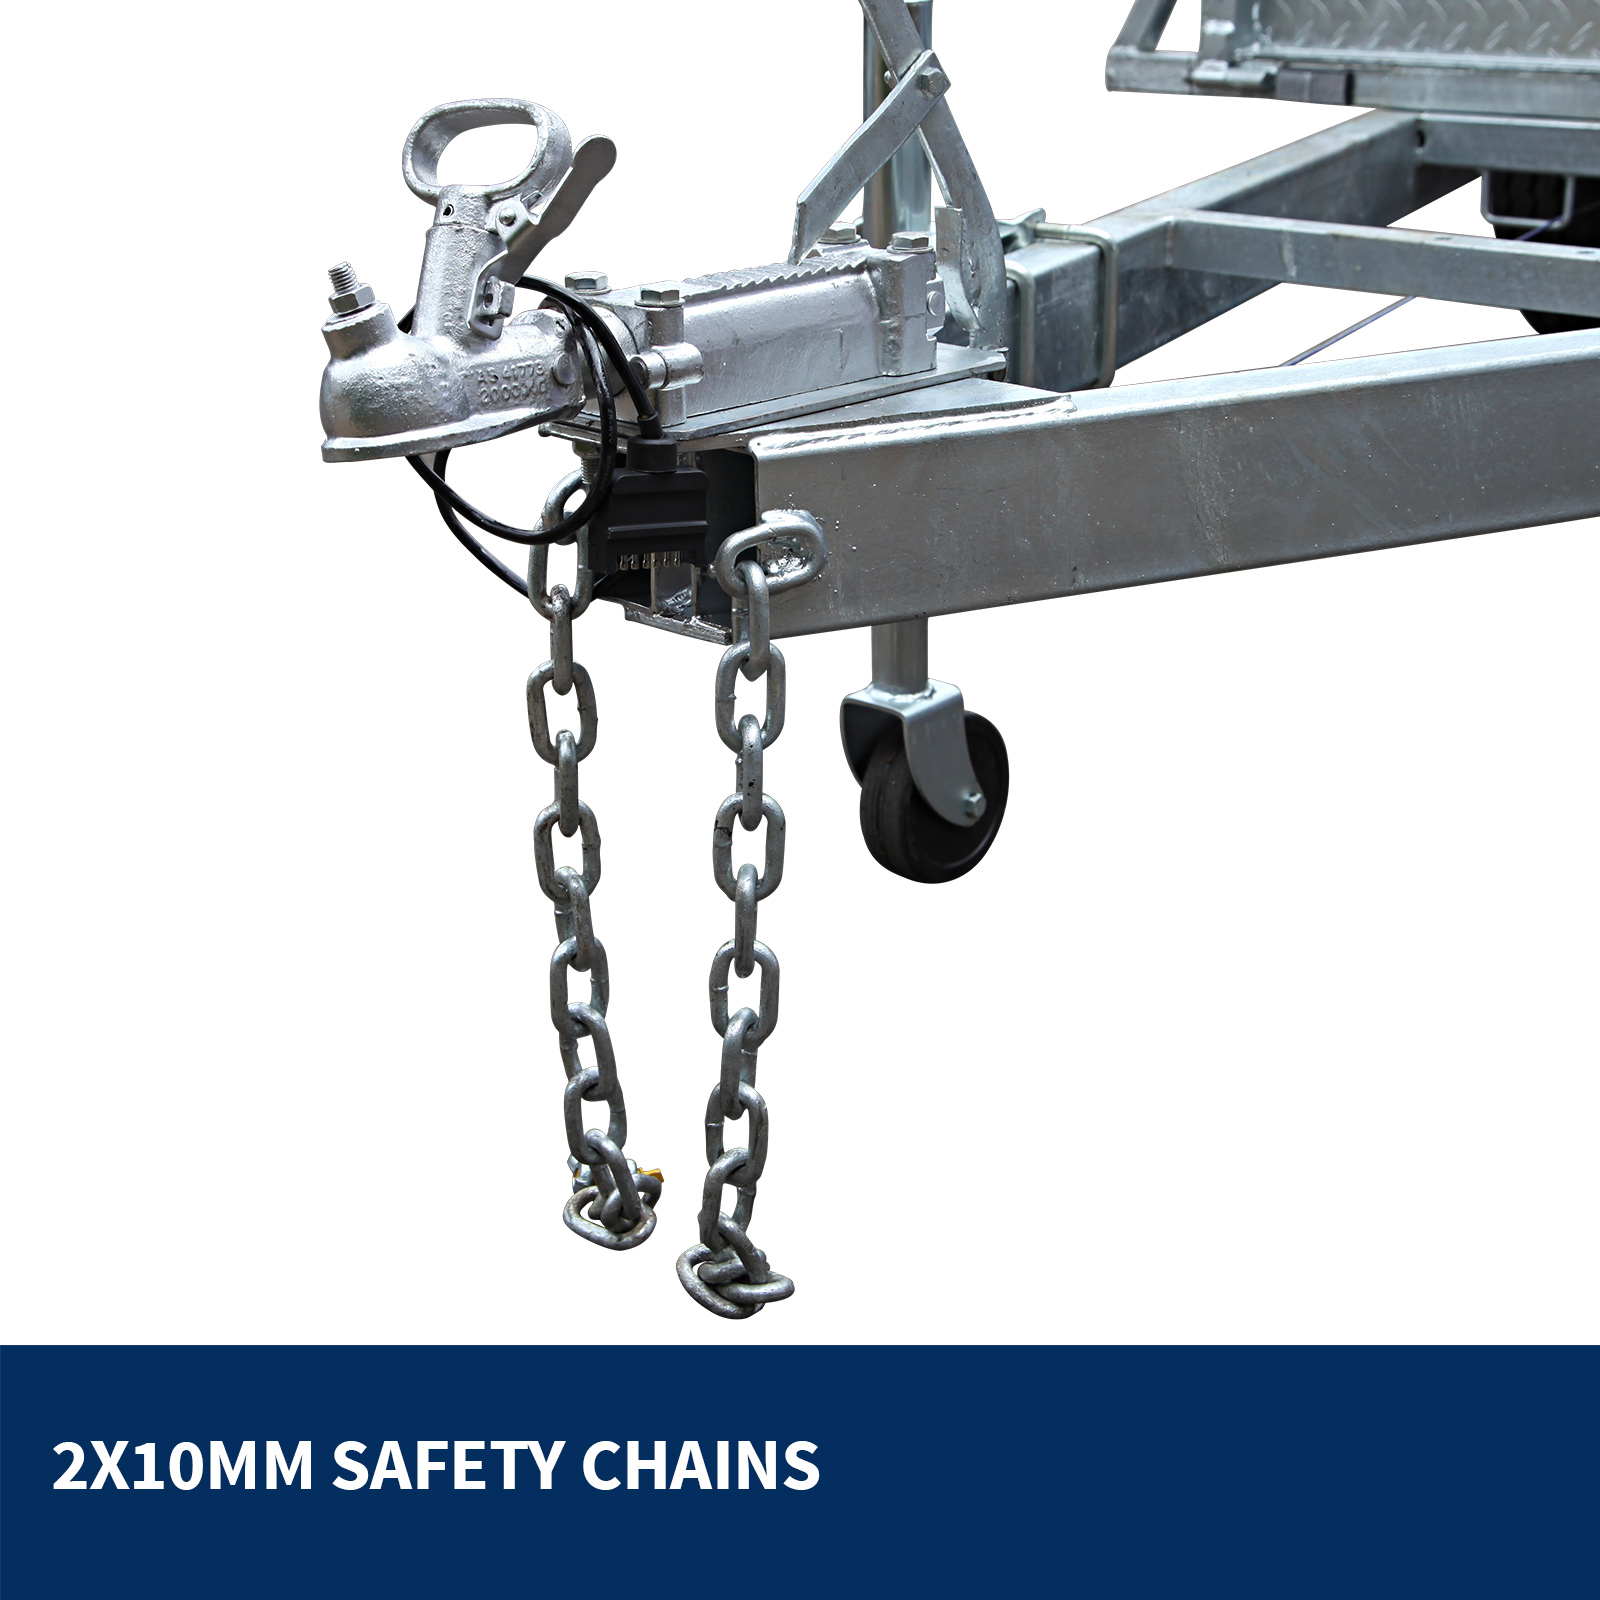 New 8x5 Tandem Axle Trailer from Xtreme Trailers with 600 mm cage